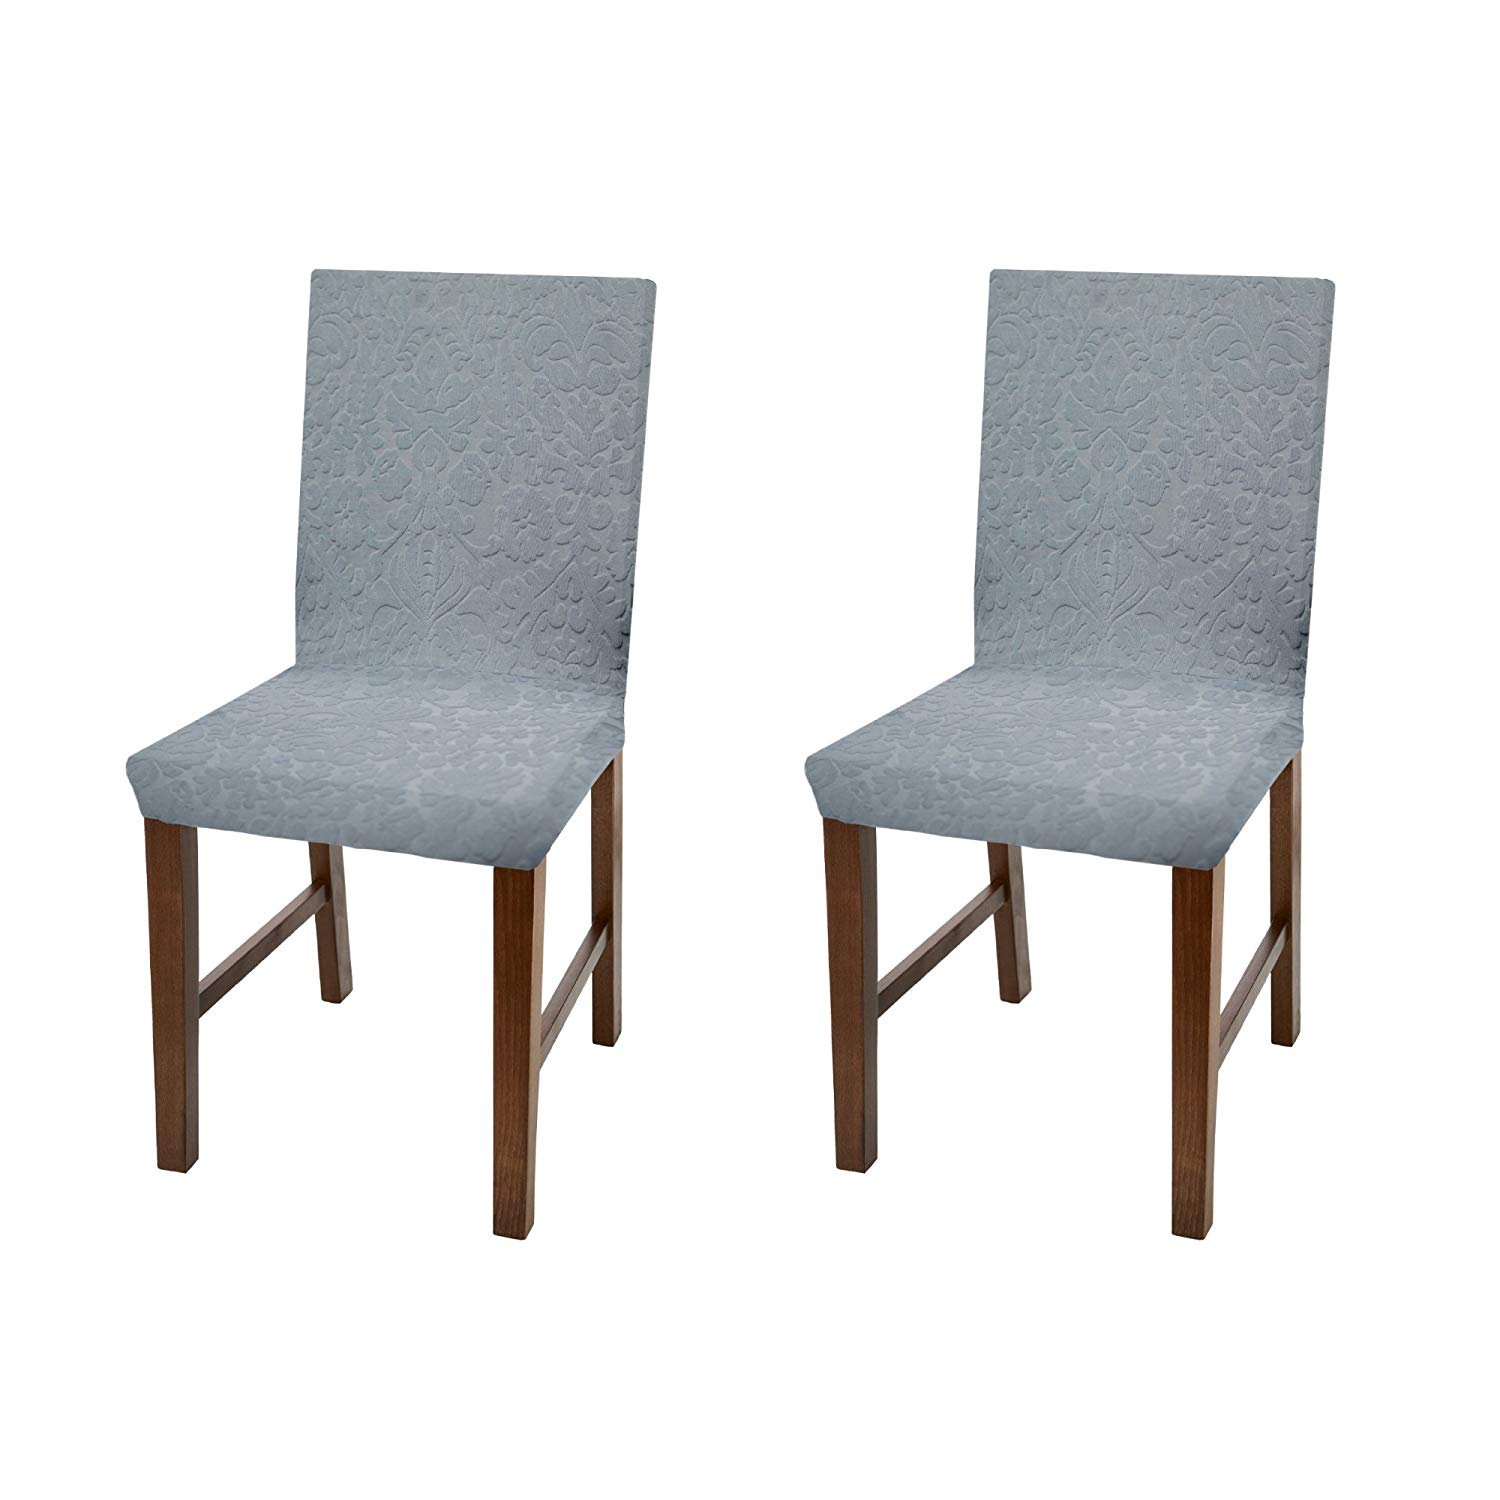 dining chair covers in store rainforest spacesaver high linen luxurious damask cover form fitting soft parson slipcover grey set of 2 walmart com